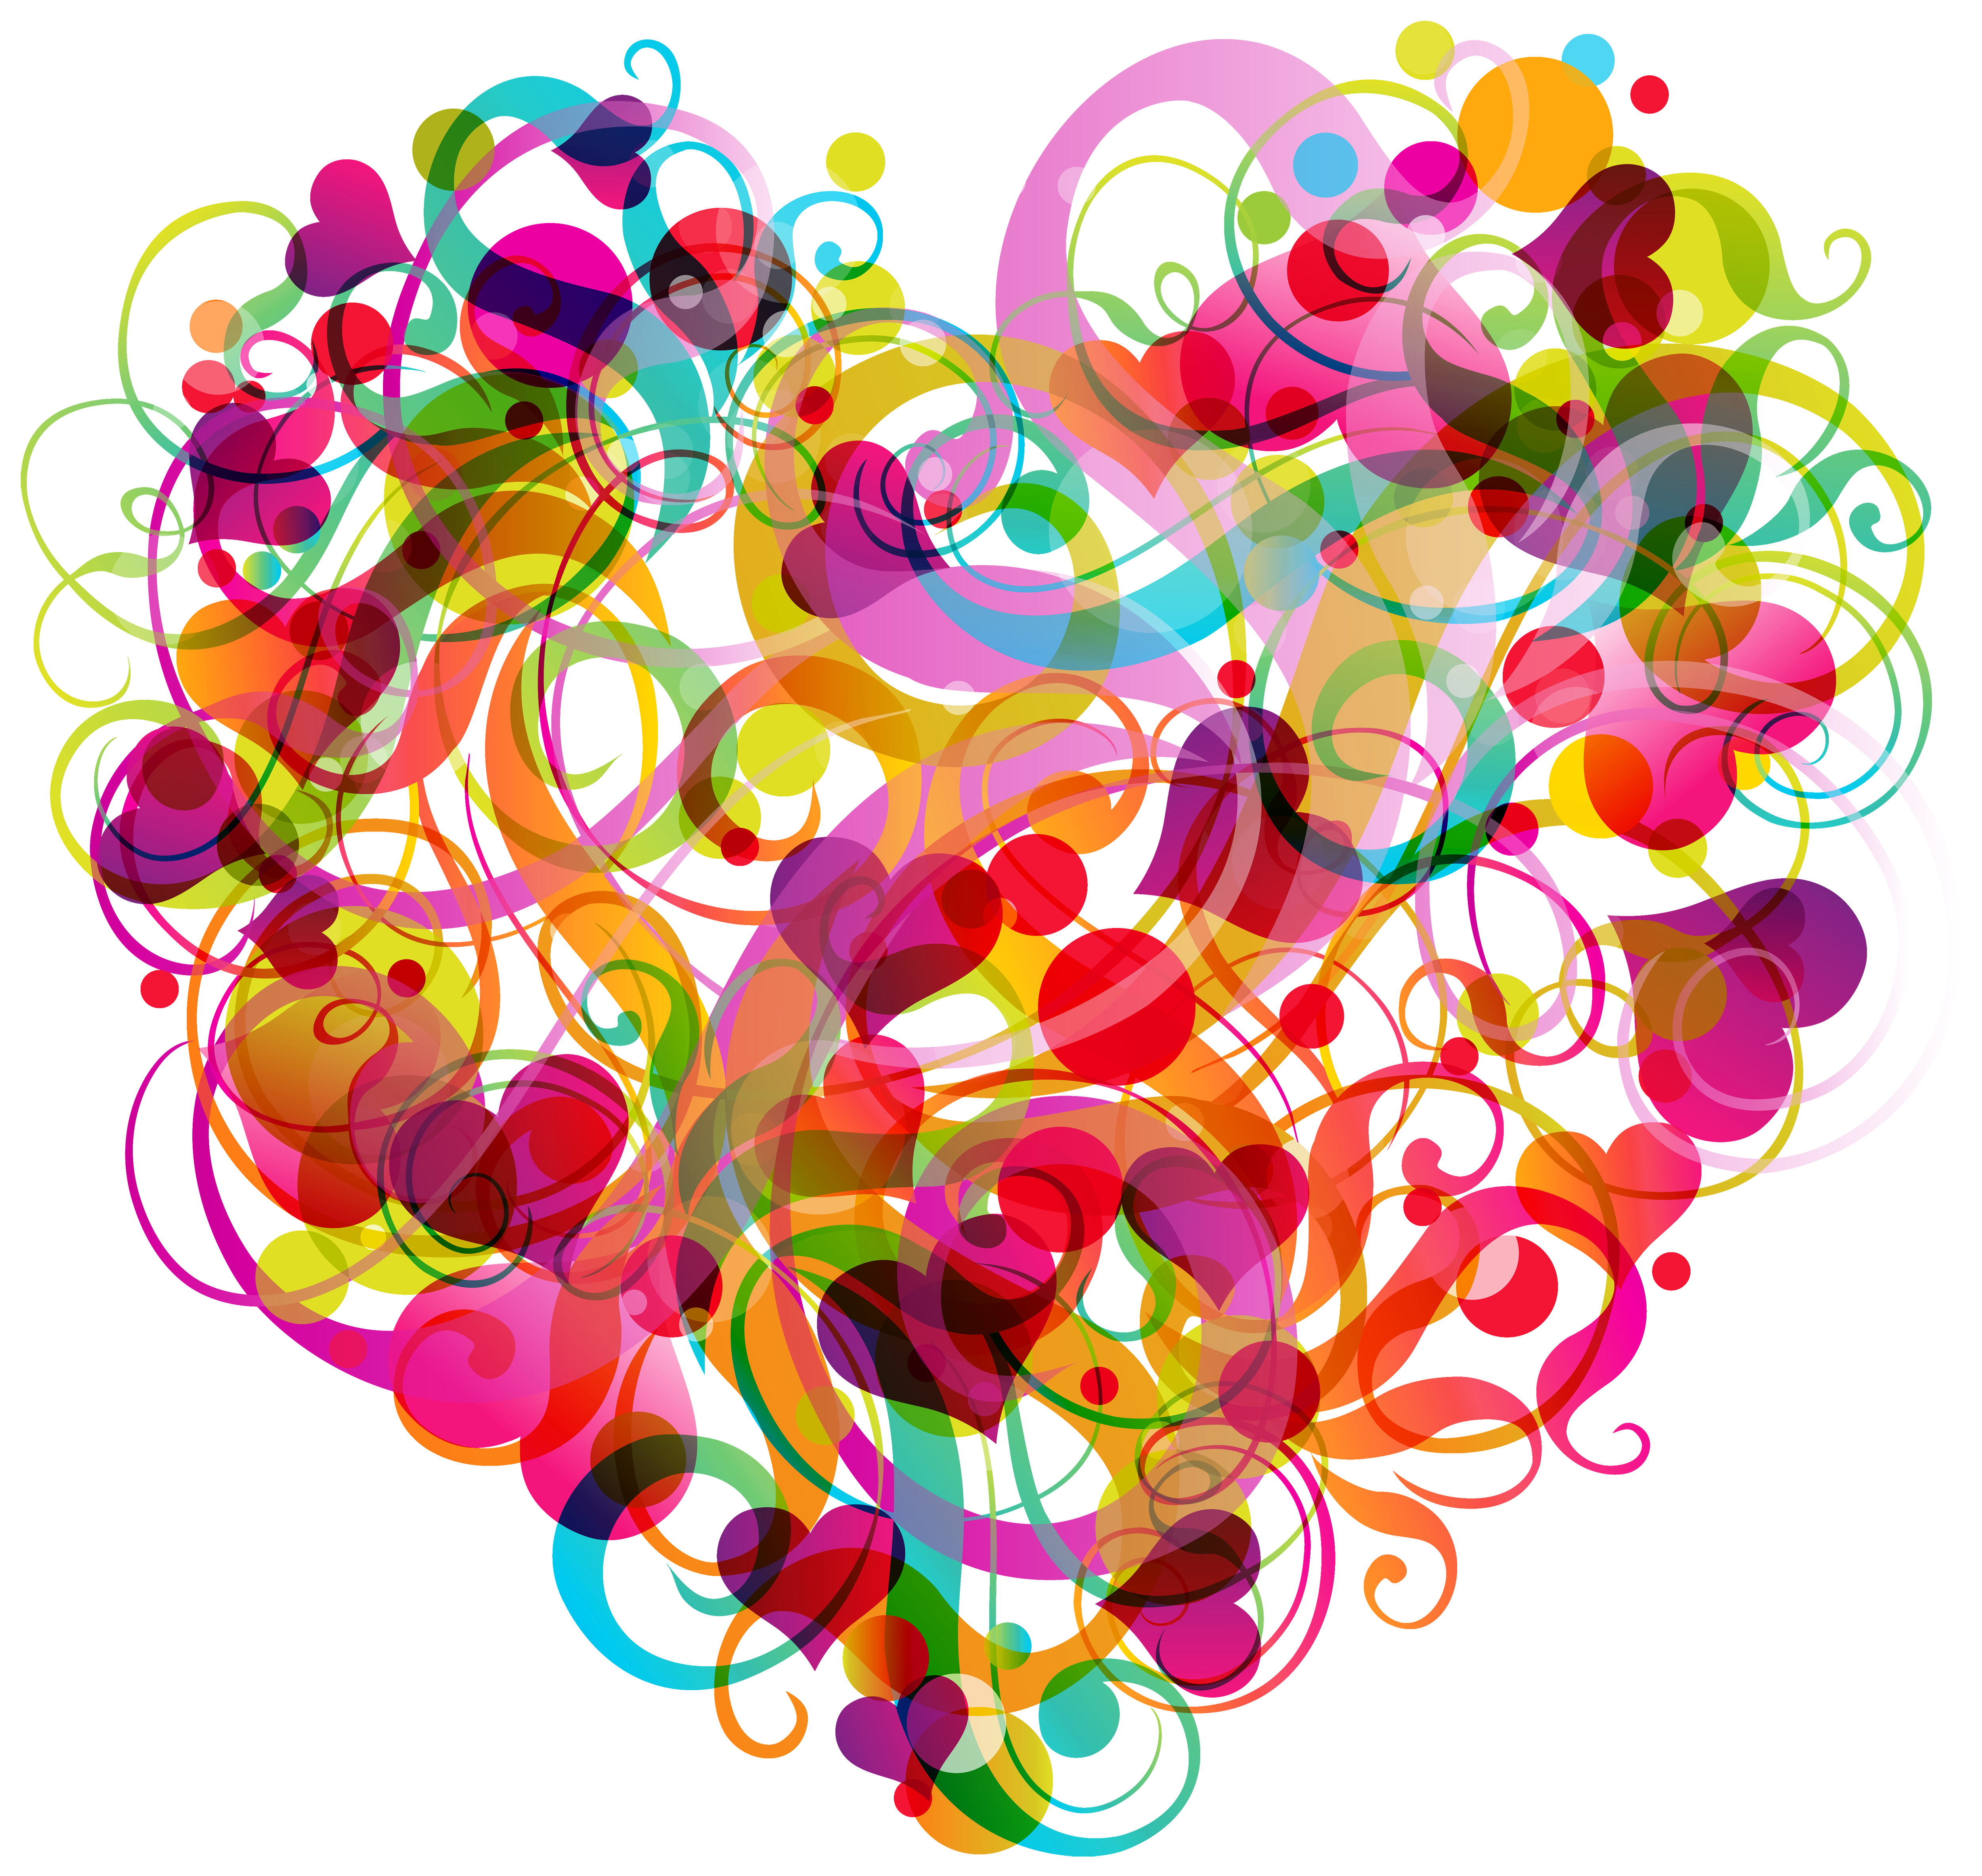 Abstract Colorful Heart PNG Clipart.